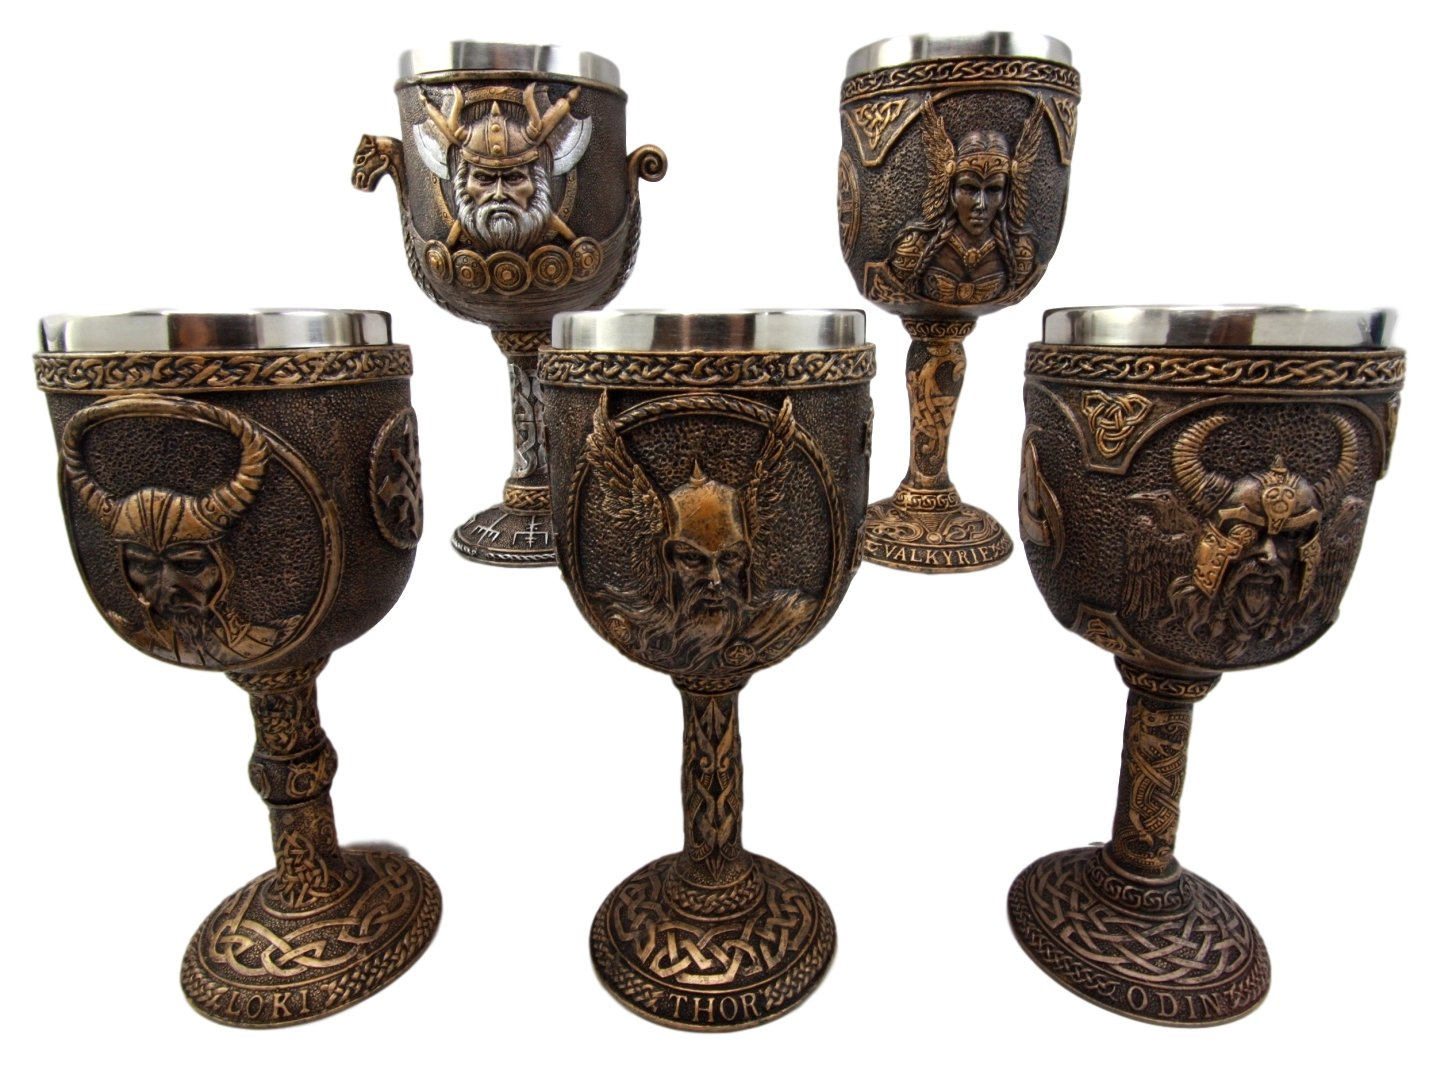 Norse God Thor Odin Loki Valkyrie Goblet Collection Bronzed Gift Wine Cup